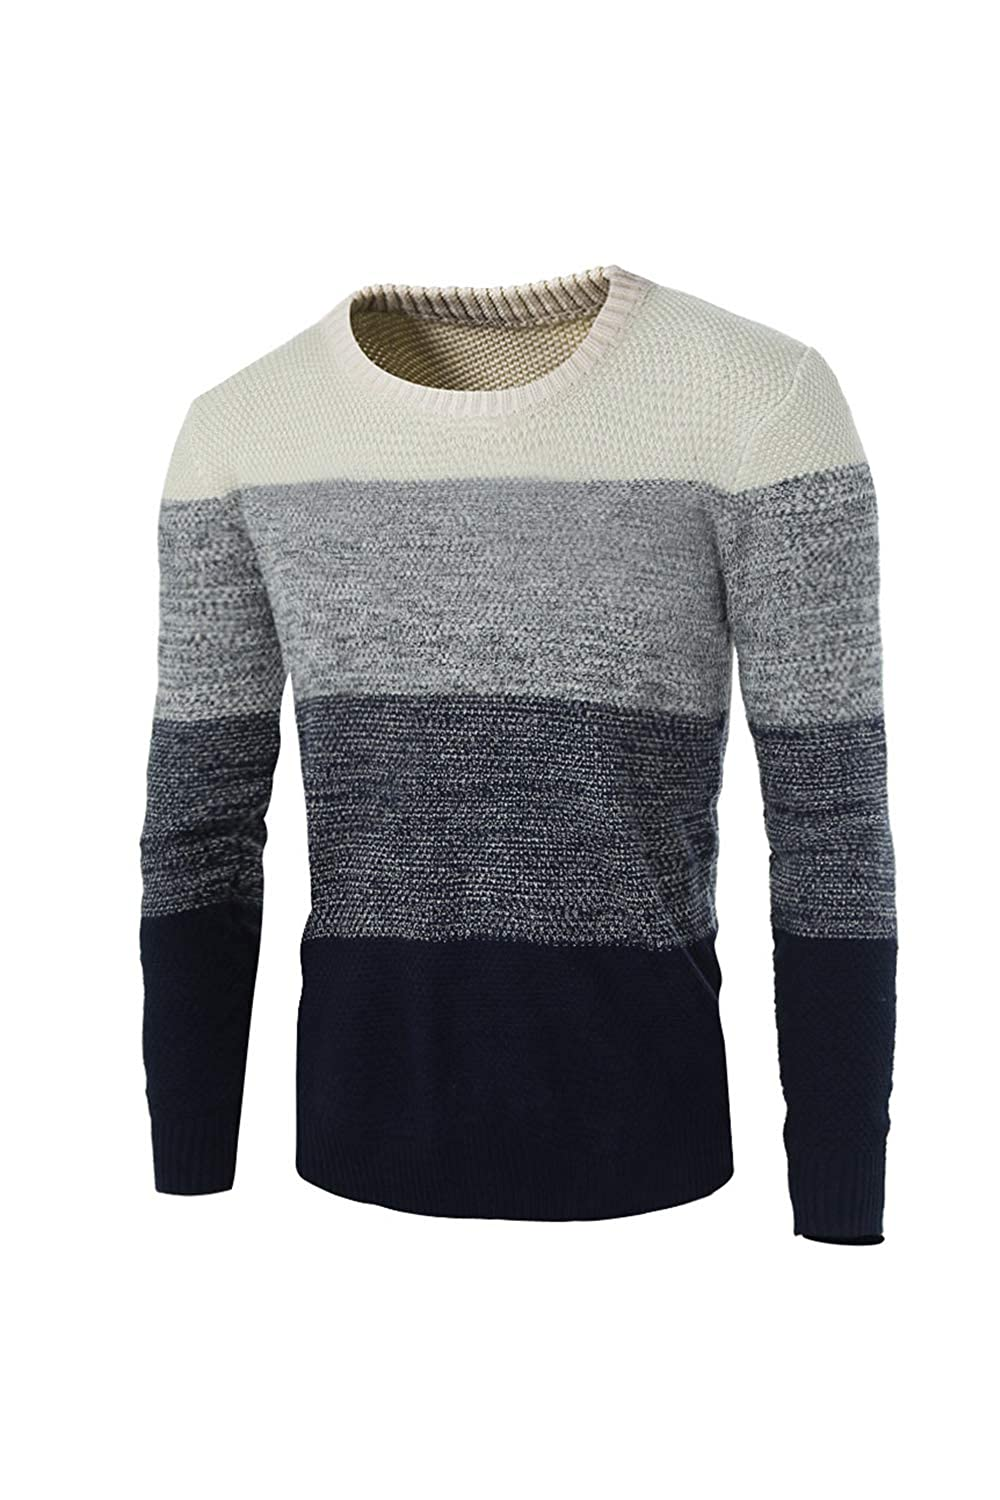 Simgahuva Mens Crewneck Sweater Knitted Colorblock Long Sleeve Pullover